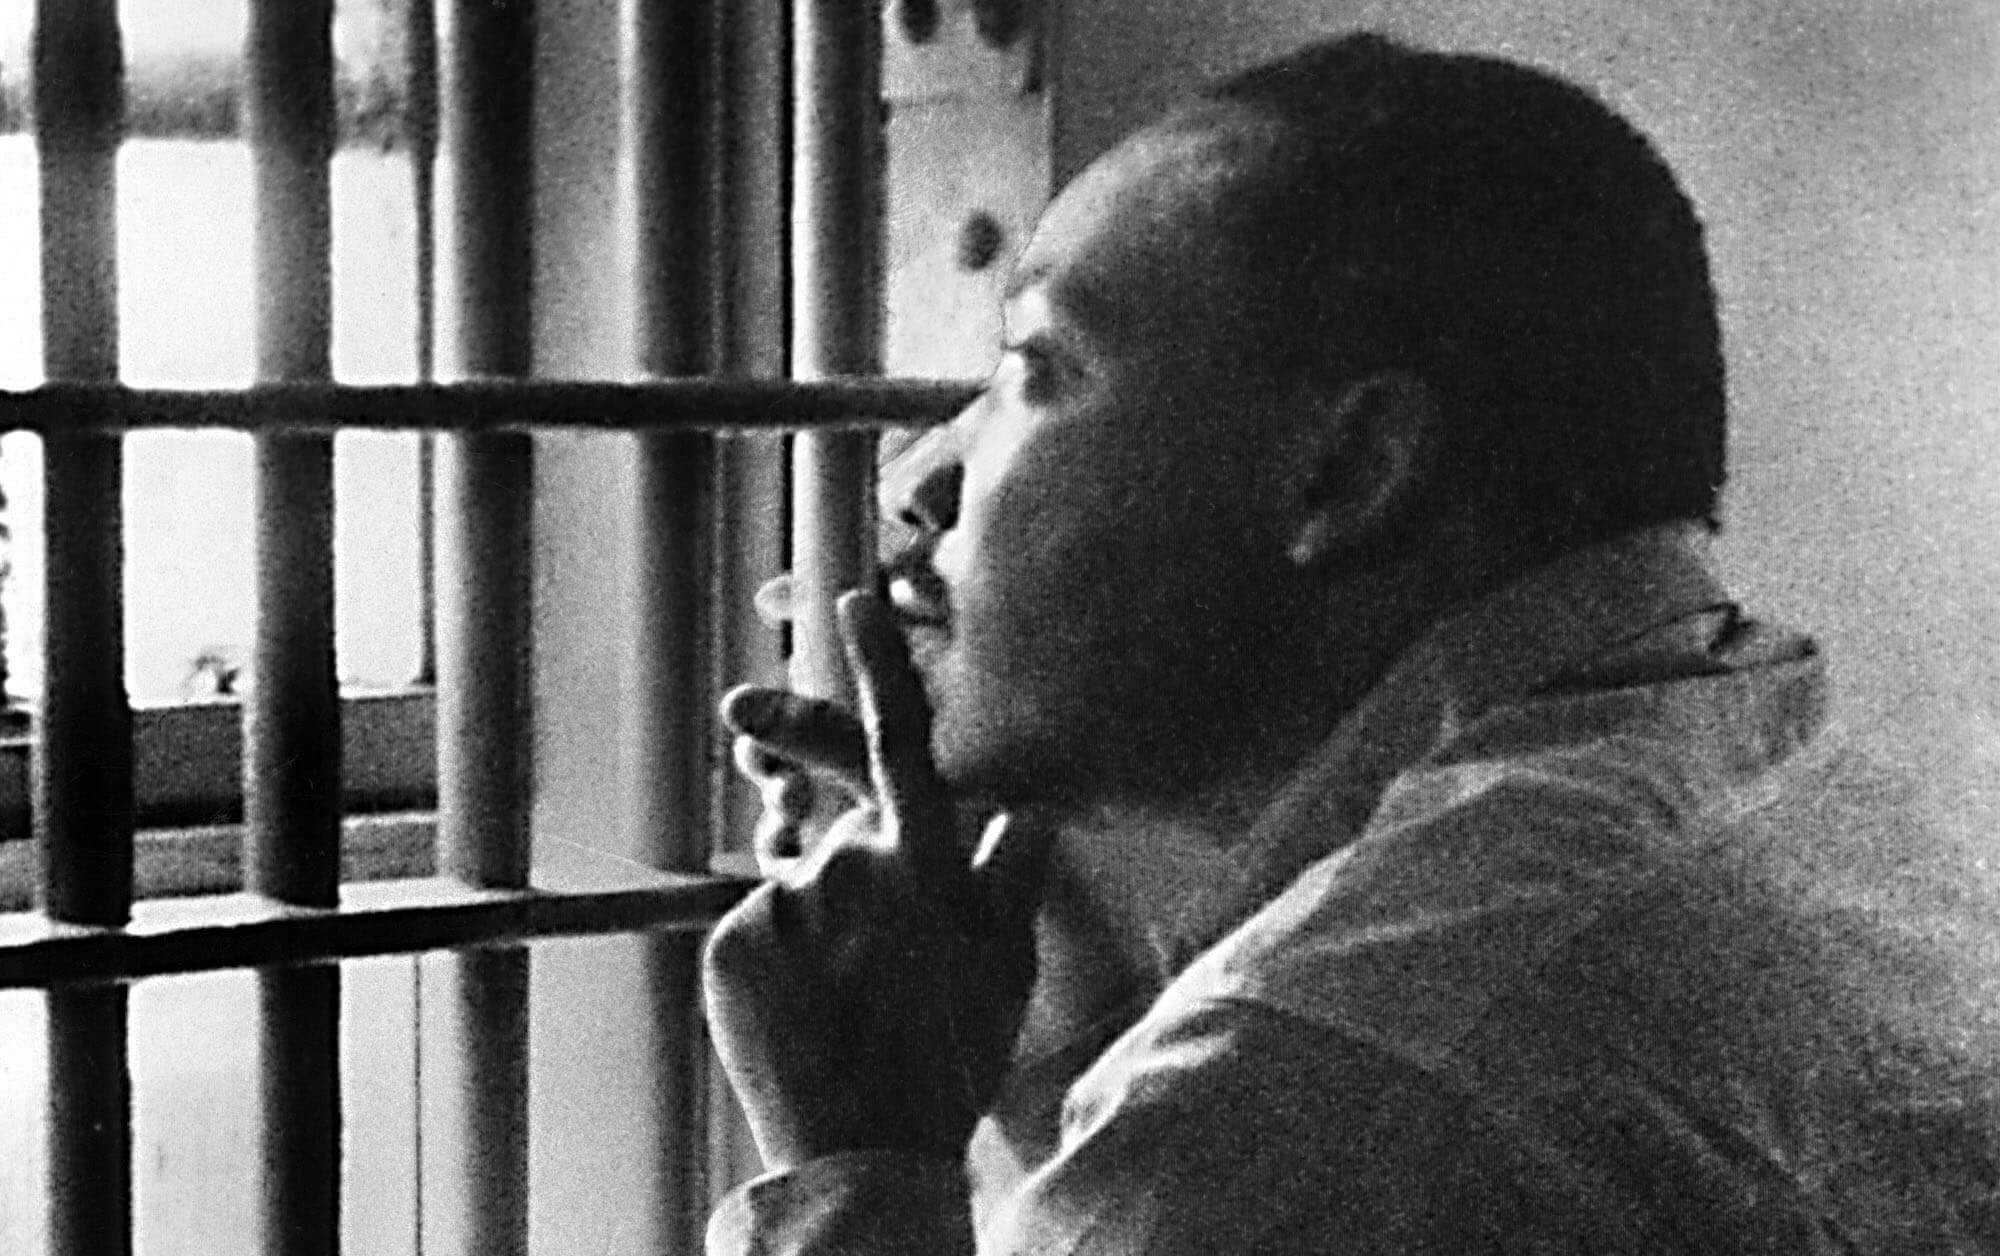 MLK sitting in a prison cell